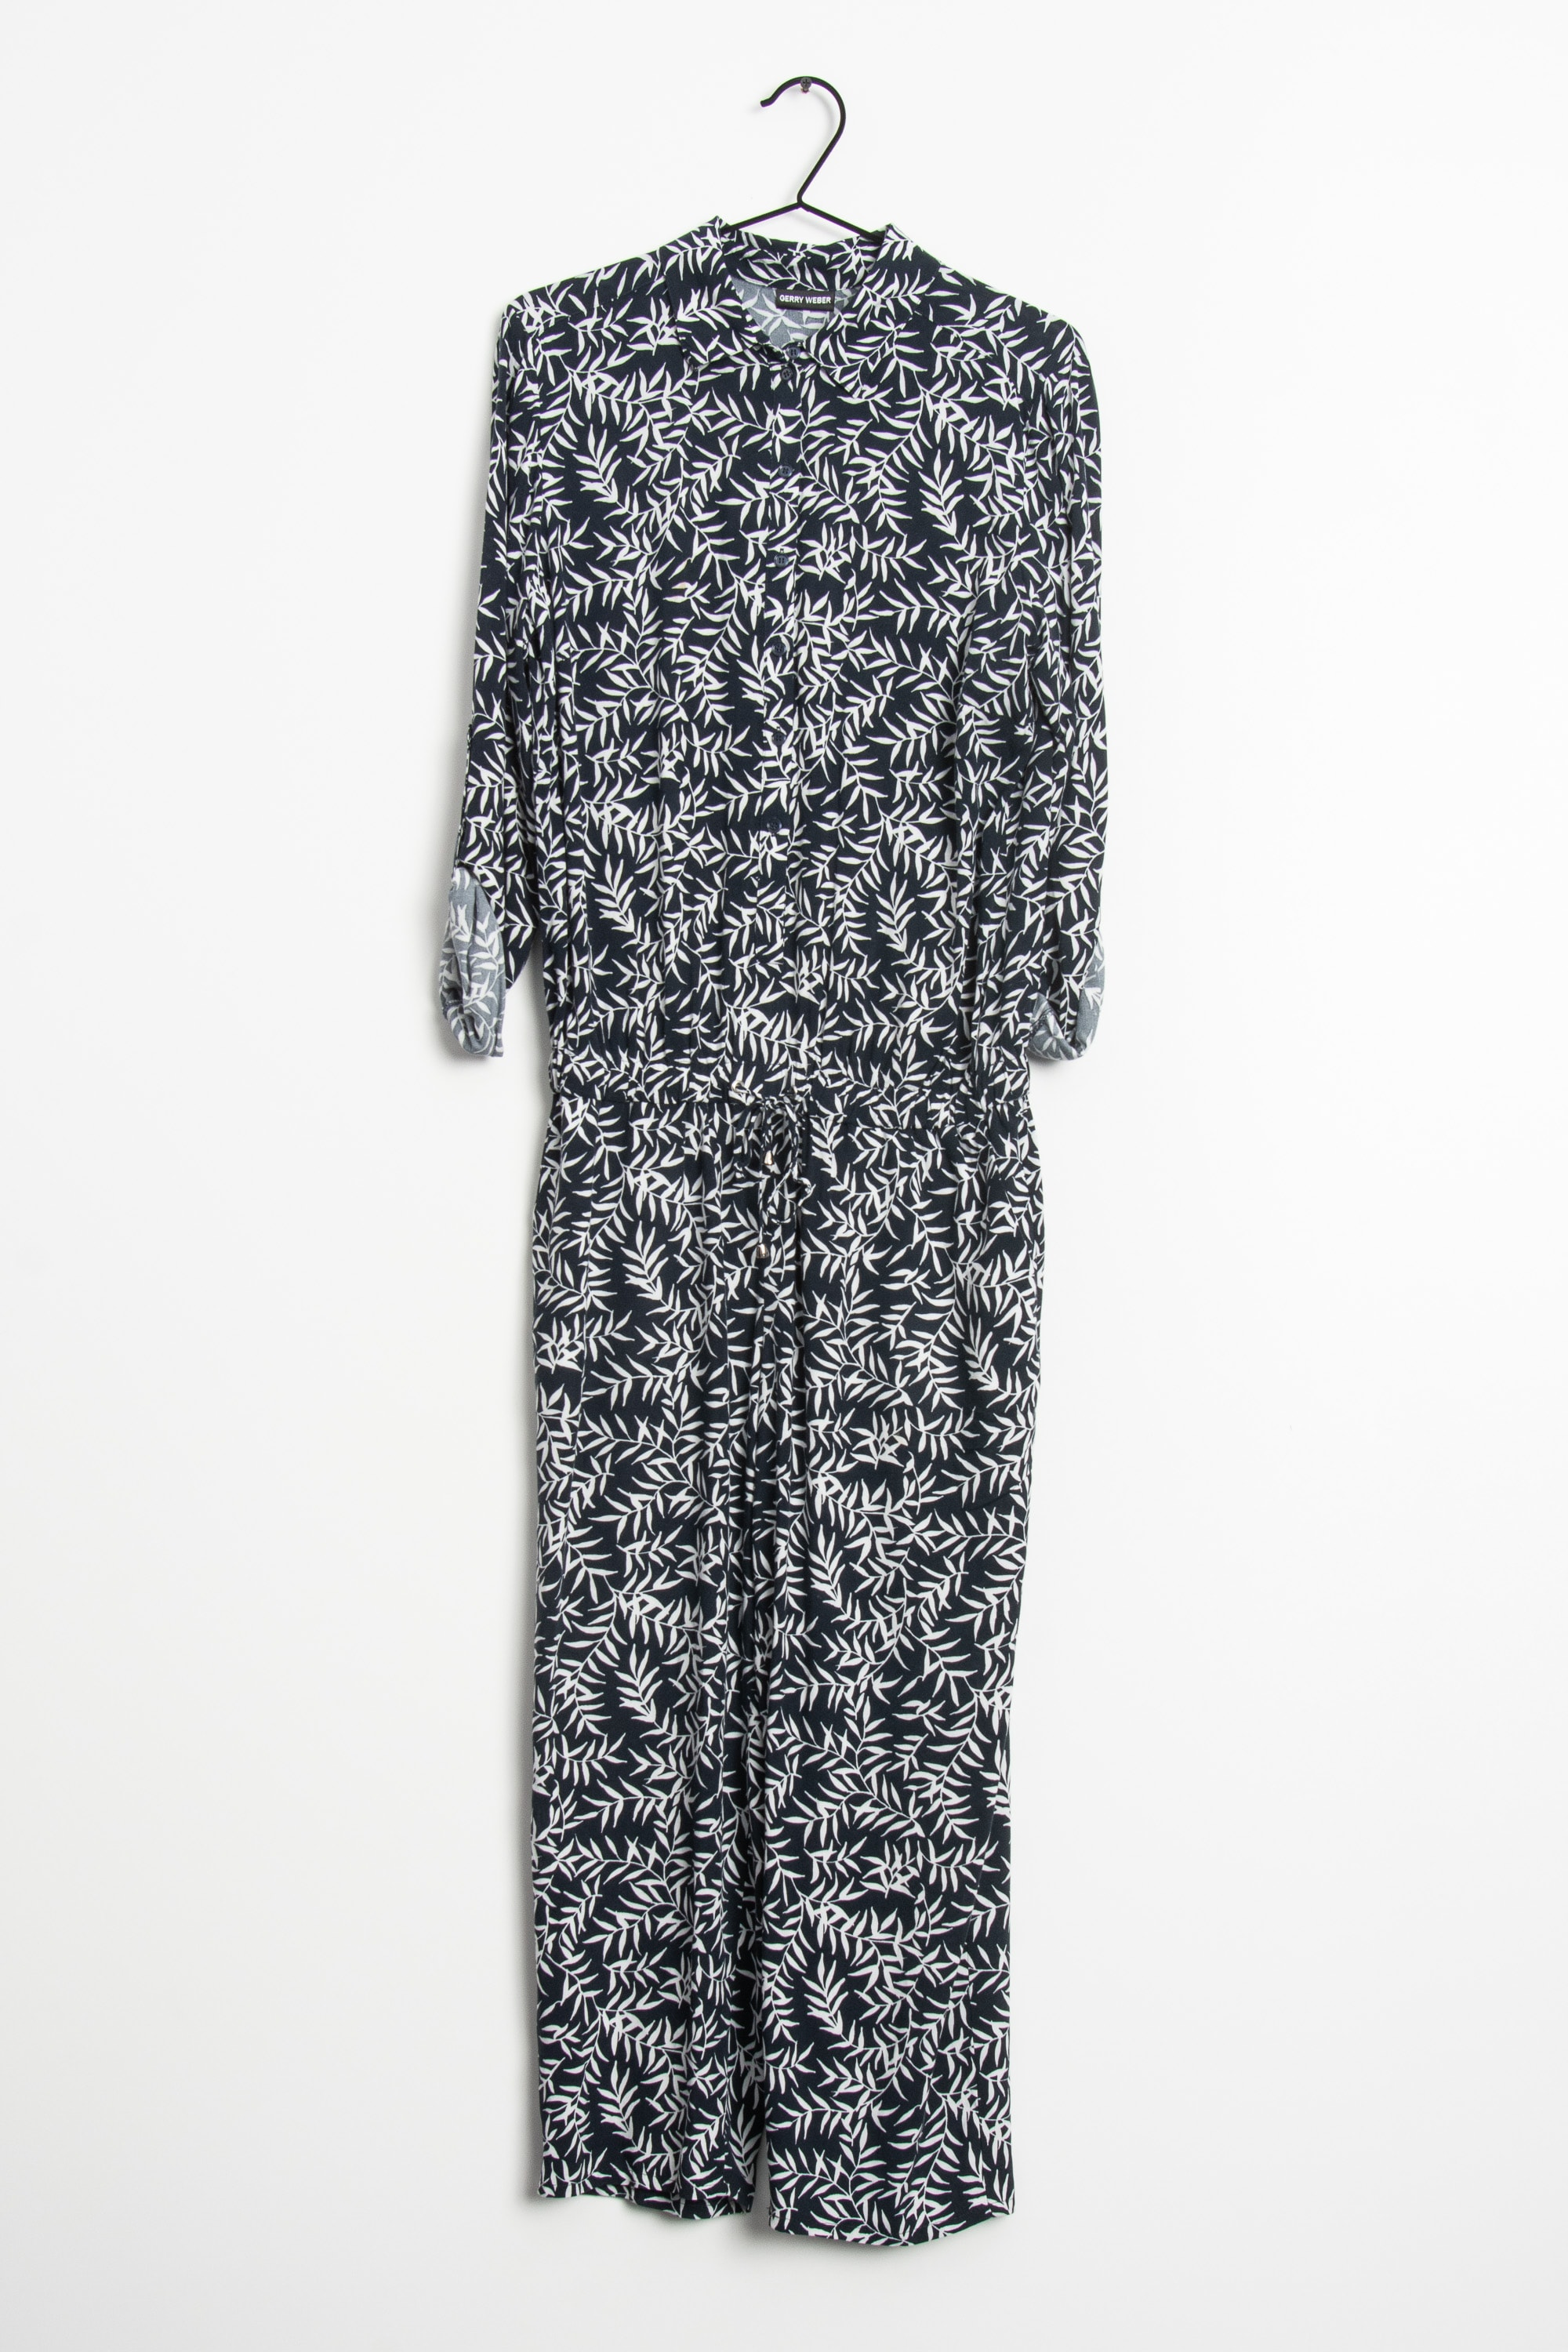 GERRY WEBER Jumpsuit / Overall Mehrfarbig Gr.38